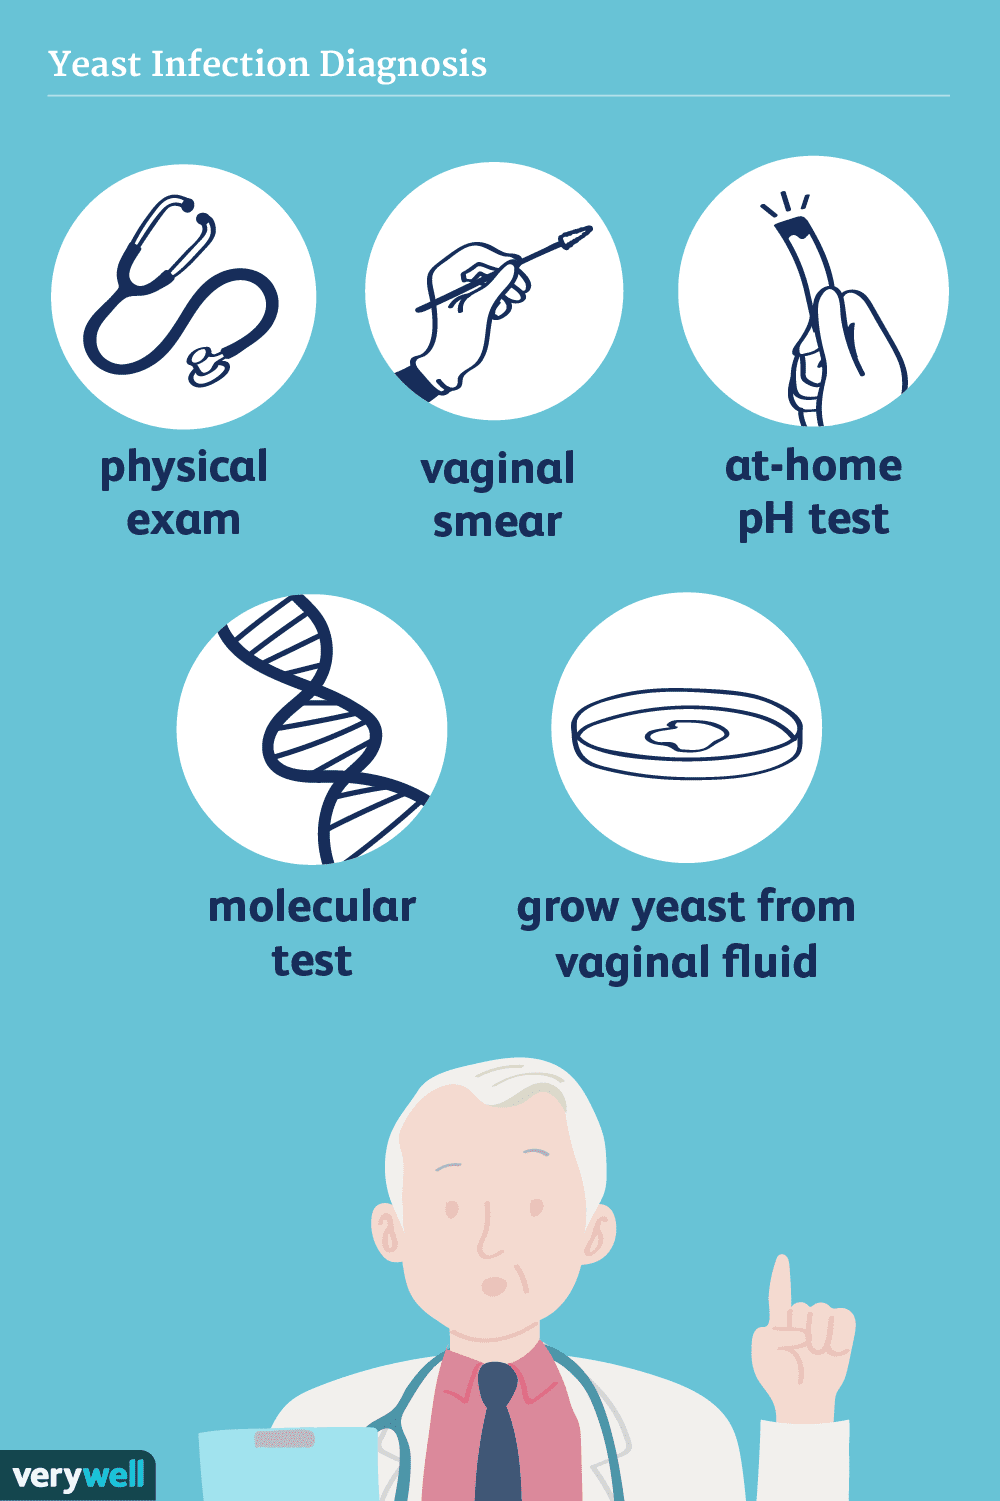 yeast infection diagnosis